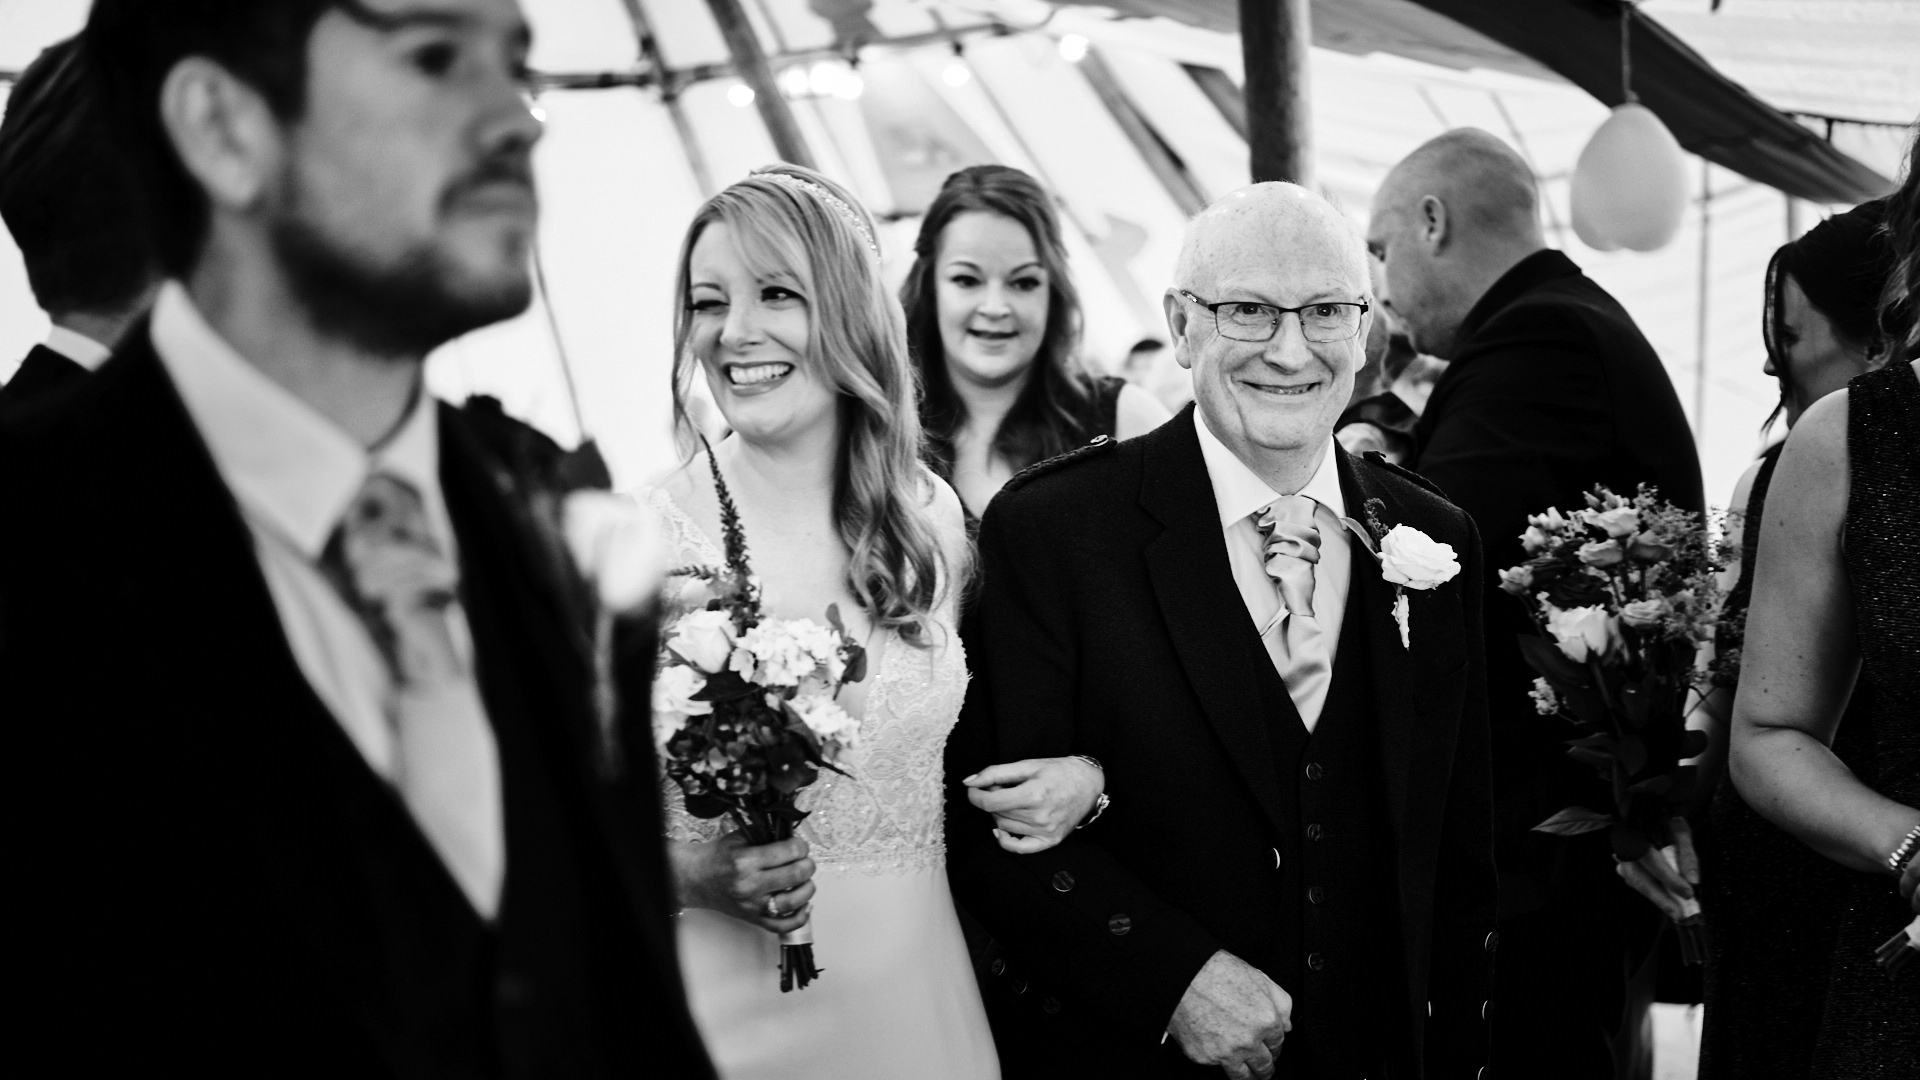 black and white photograph of a bride winking at a guest as she walk down the aisle at her wedding